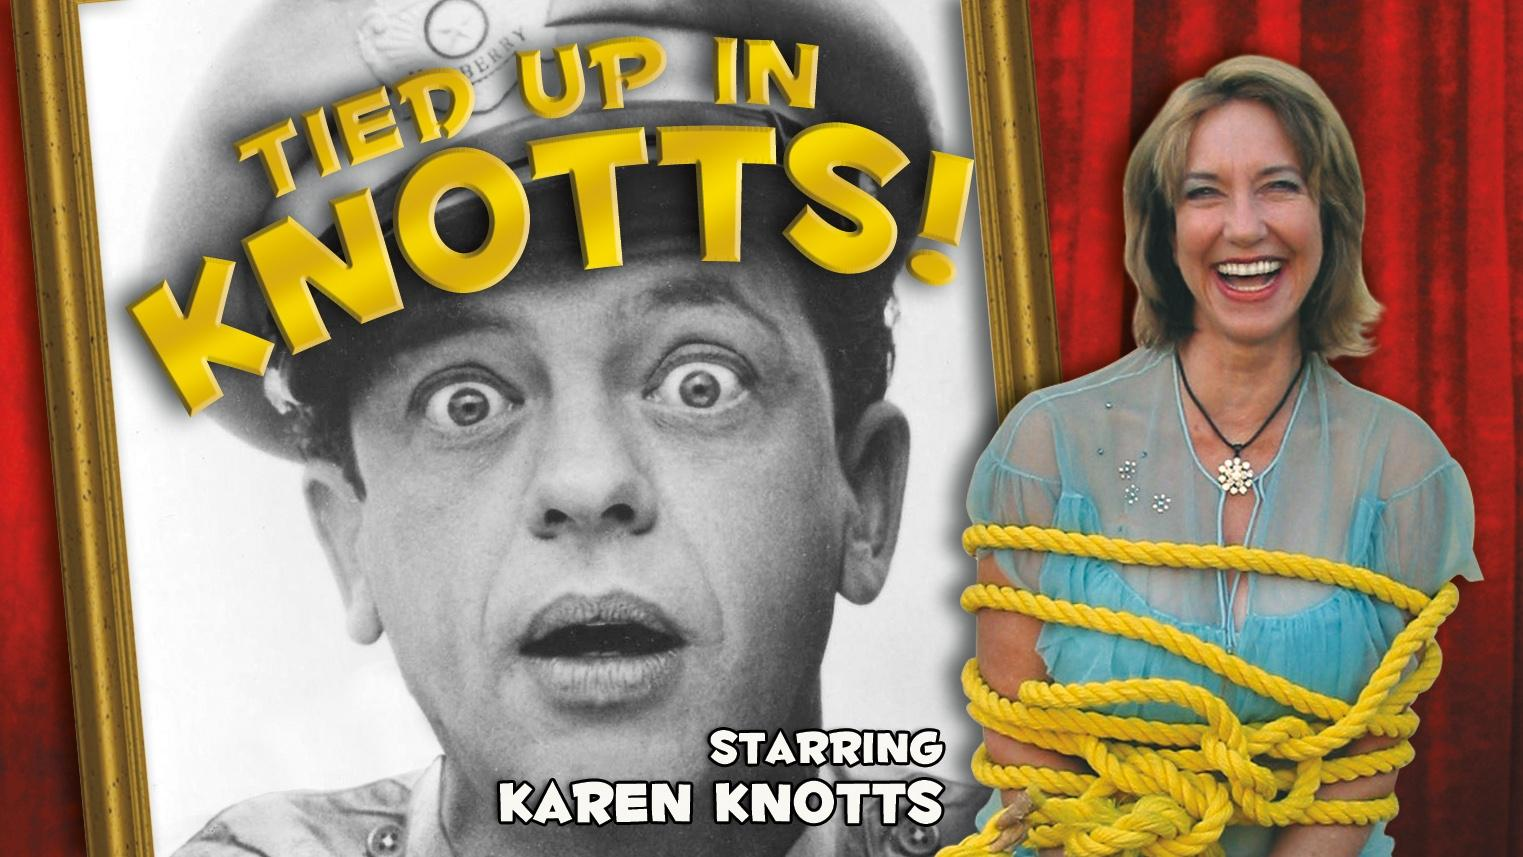 DON KNOTTS' DAUGHTER, KAREN KNOTTS, STARS IN HER FANTASTICALLY FUNNY, ONE-WOMAN SHOW, ABOUT LIFE WITH HER FATHER, AMERICA'S LEGENDARY COMEDIAN, AT MUSICAL THEATER HERITAGE AT CROWN CENTER FOR FOUR PERFORMANCES MAY 9-10-11-12